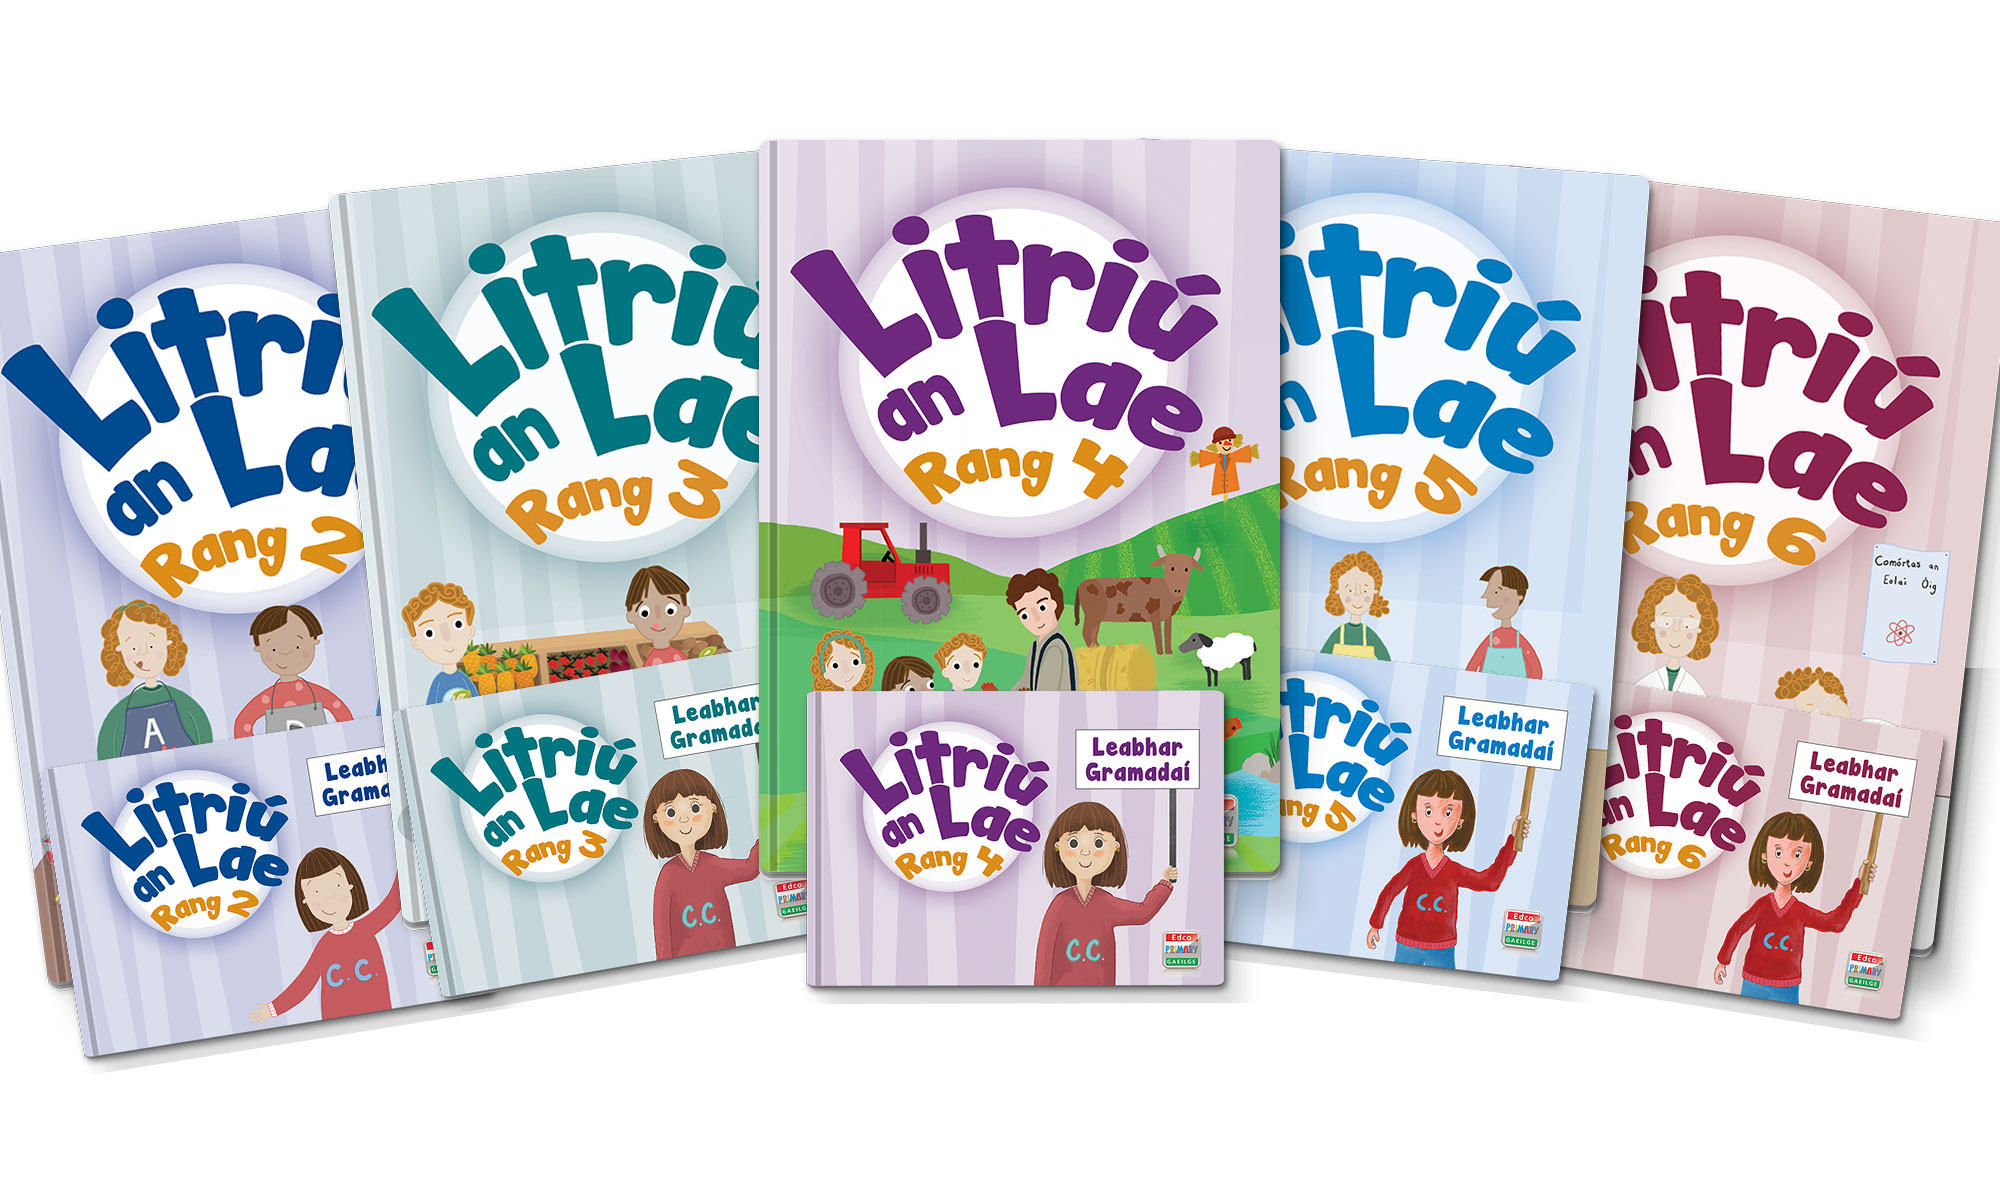 Litriú an Lae is a NEW and exciting Irish spelling and grammar series